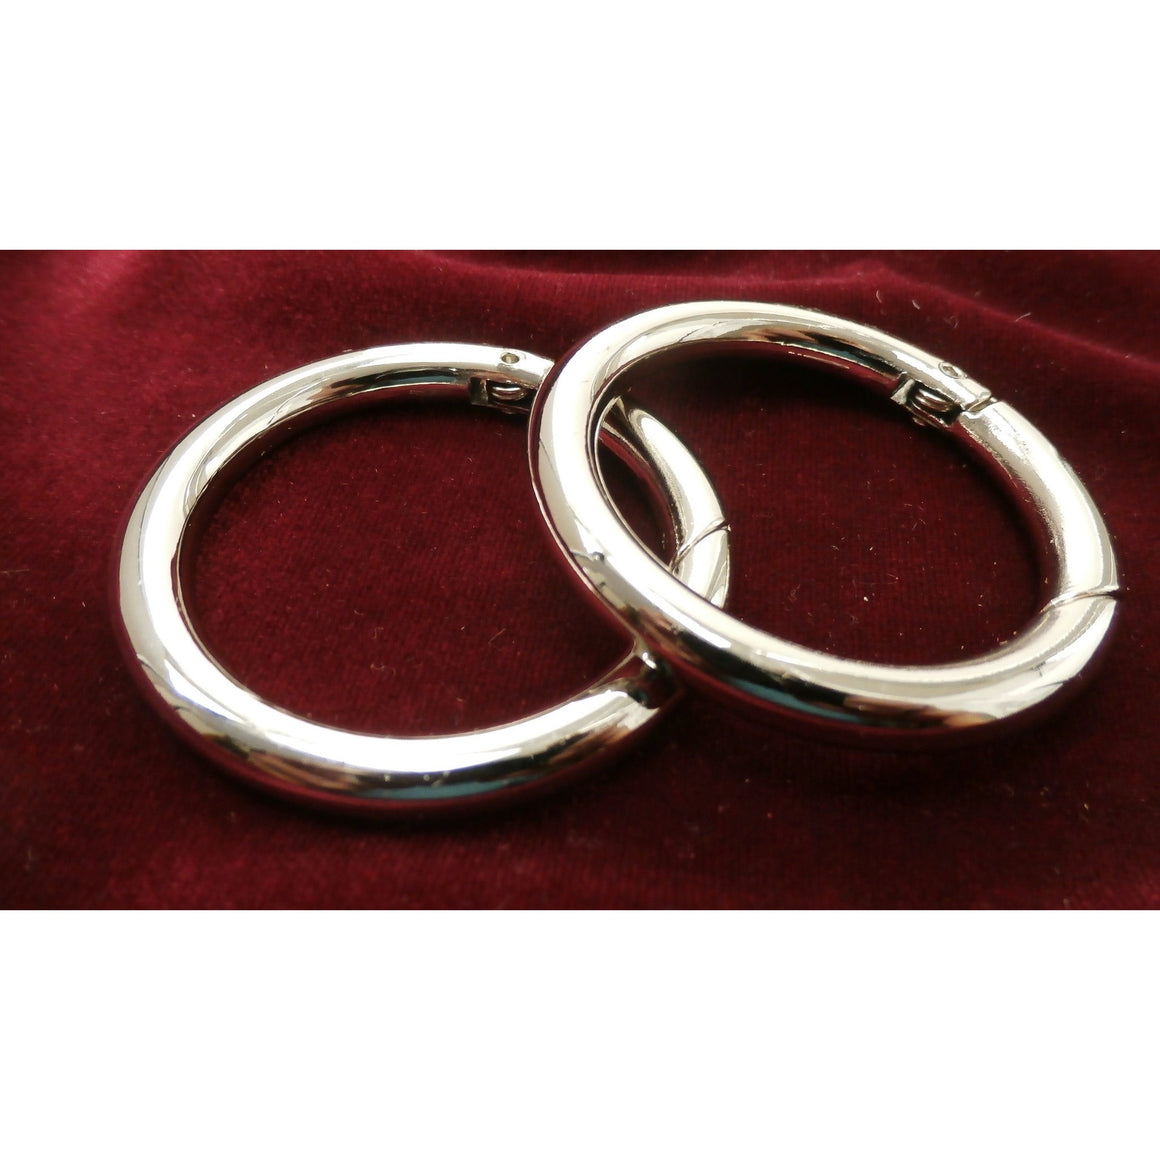 "Set of Two Spring Loaded Gate Rings  - 1 1/2""  - Attach your Carry Bag to a Tote or Purse"